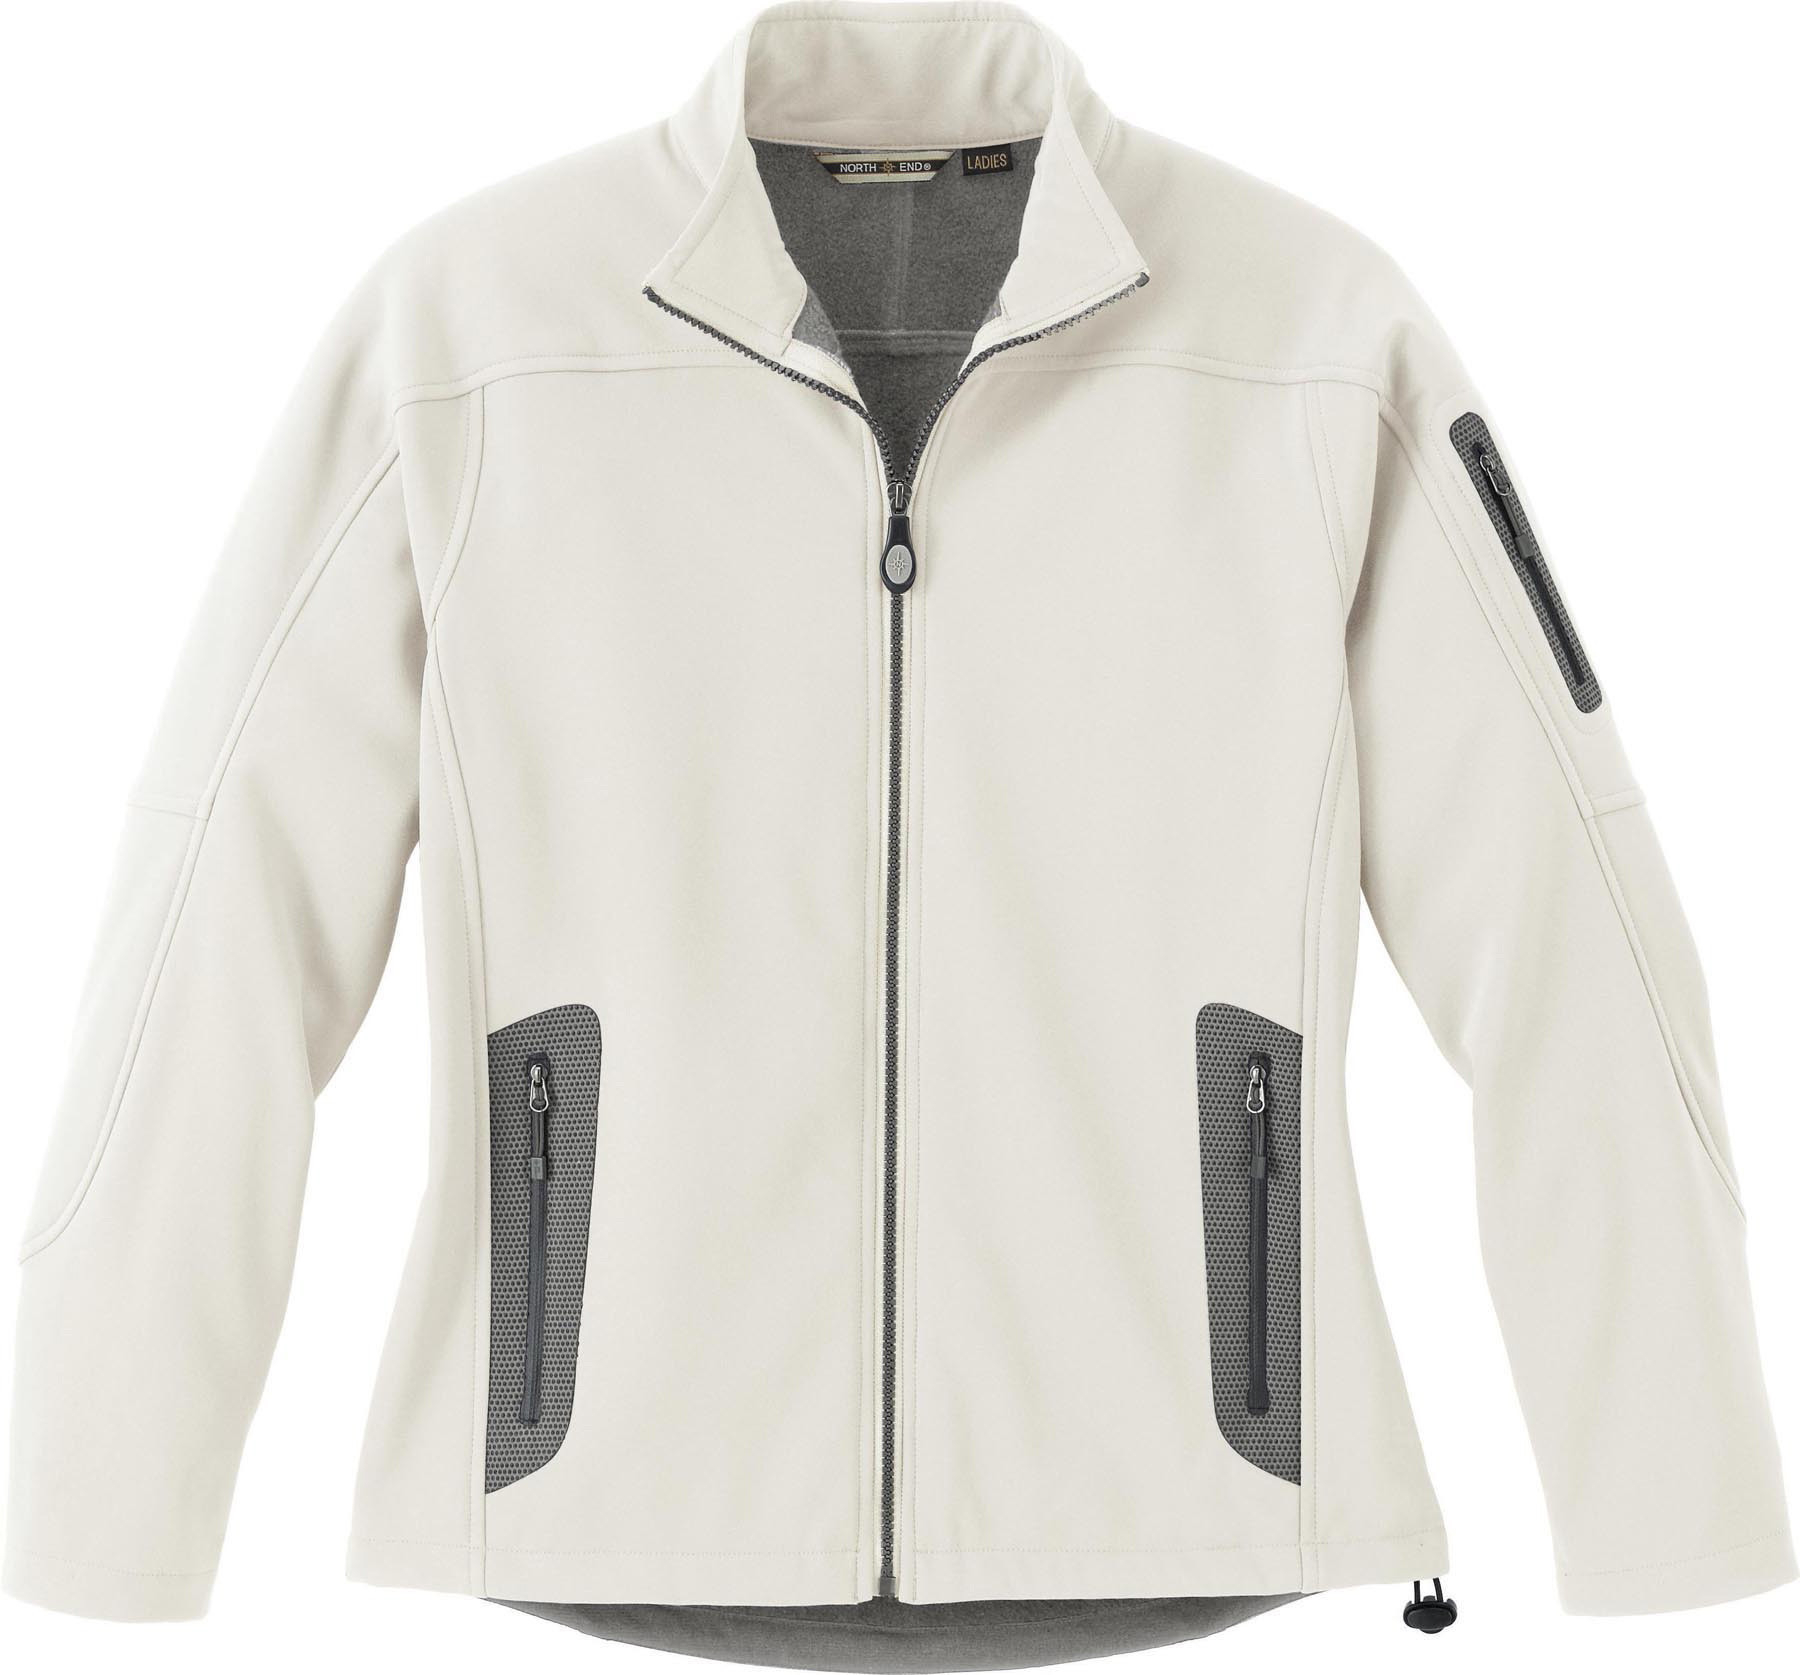 Ash City UTK 1 Warm.Logik 78060 - Ladies' Soft Shell ...